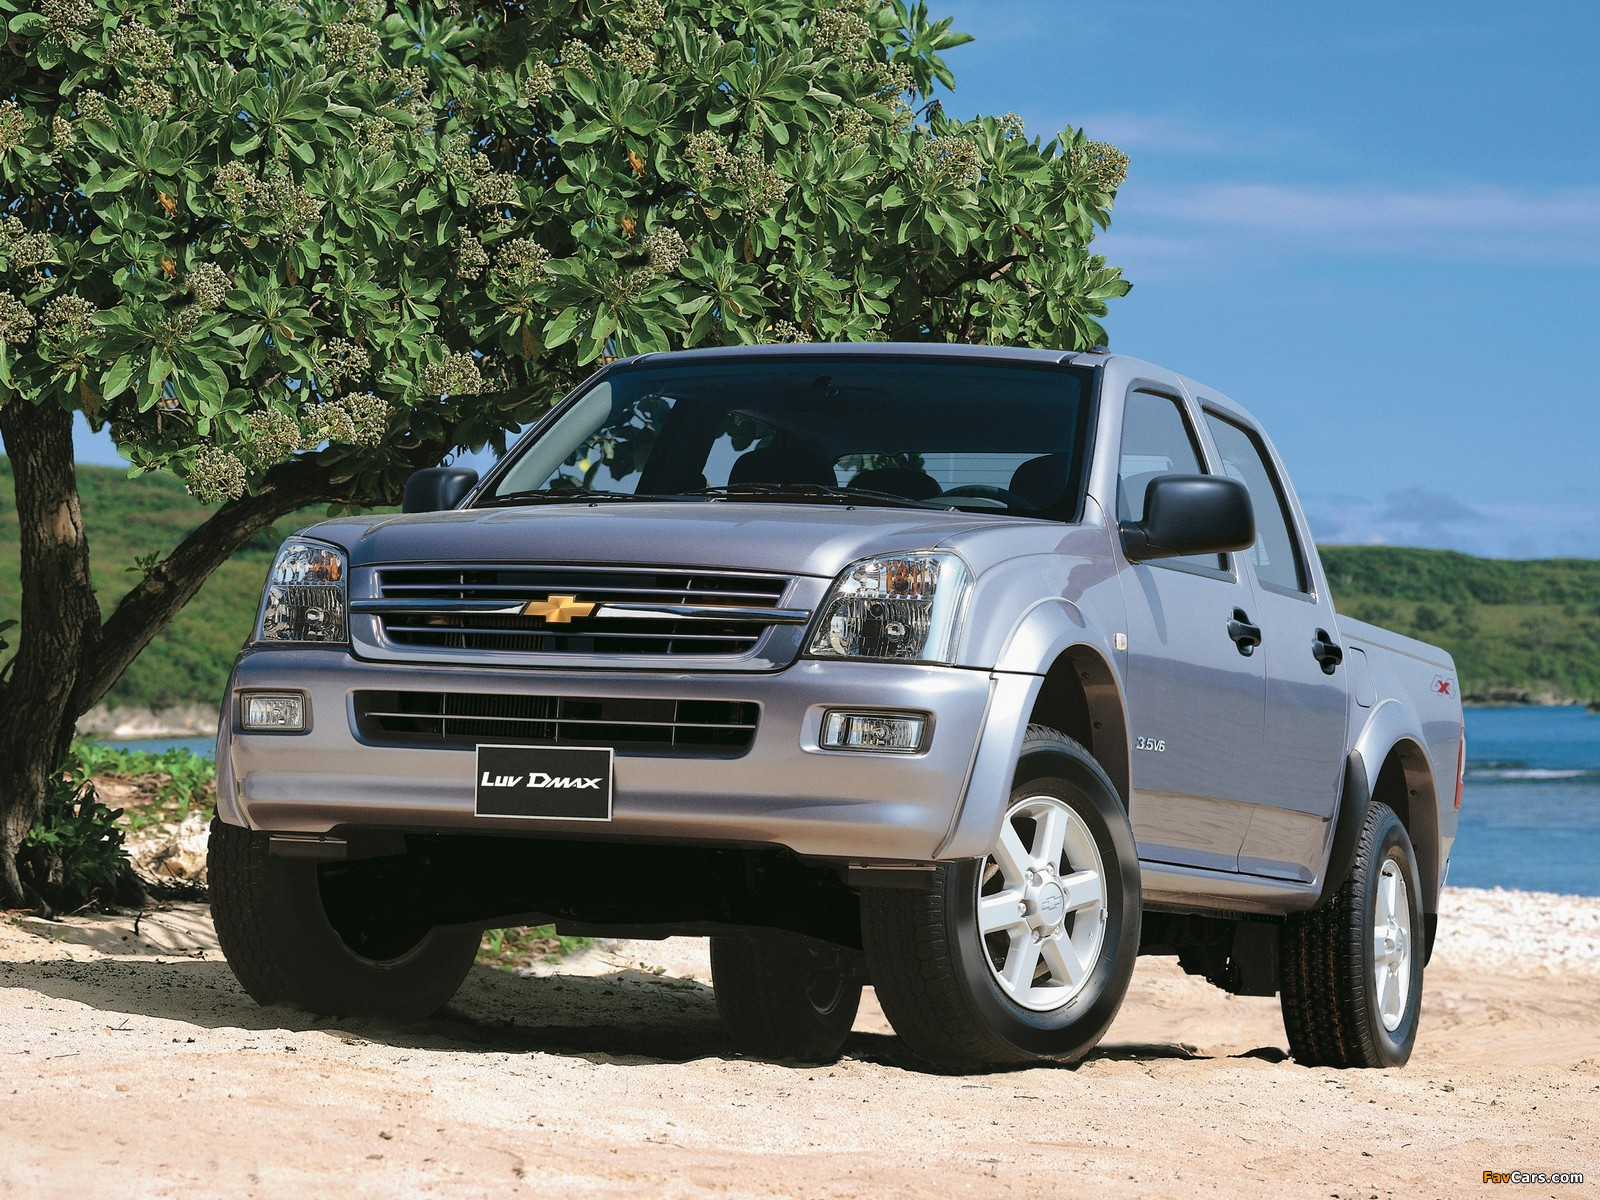 Chevrolet luv d max 2005 06 wallpapers